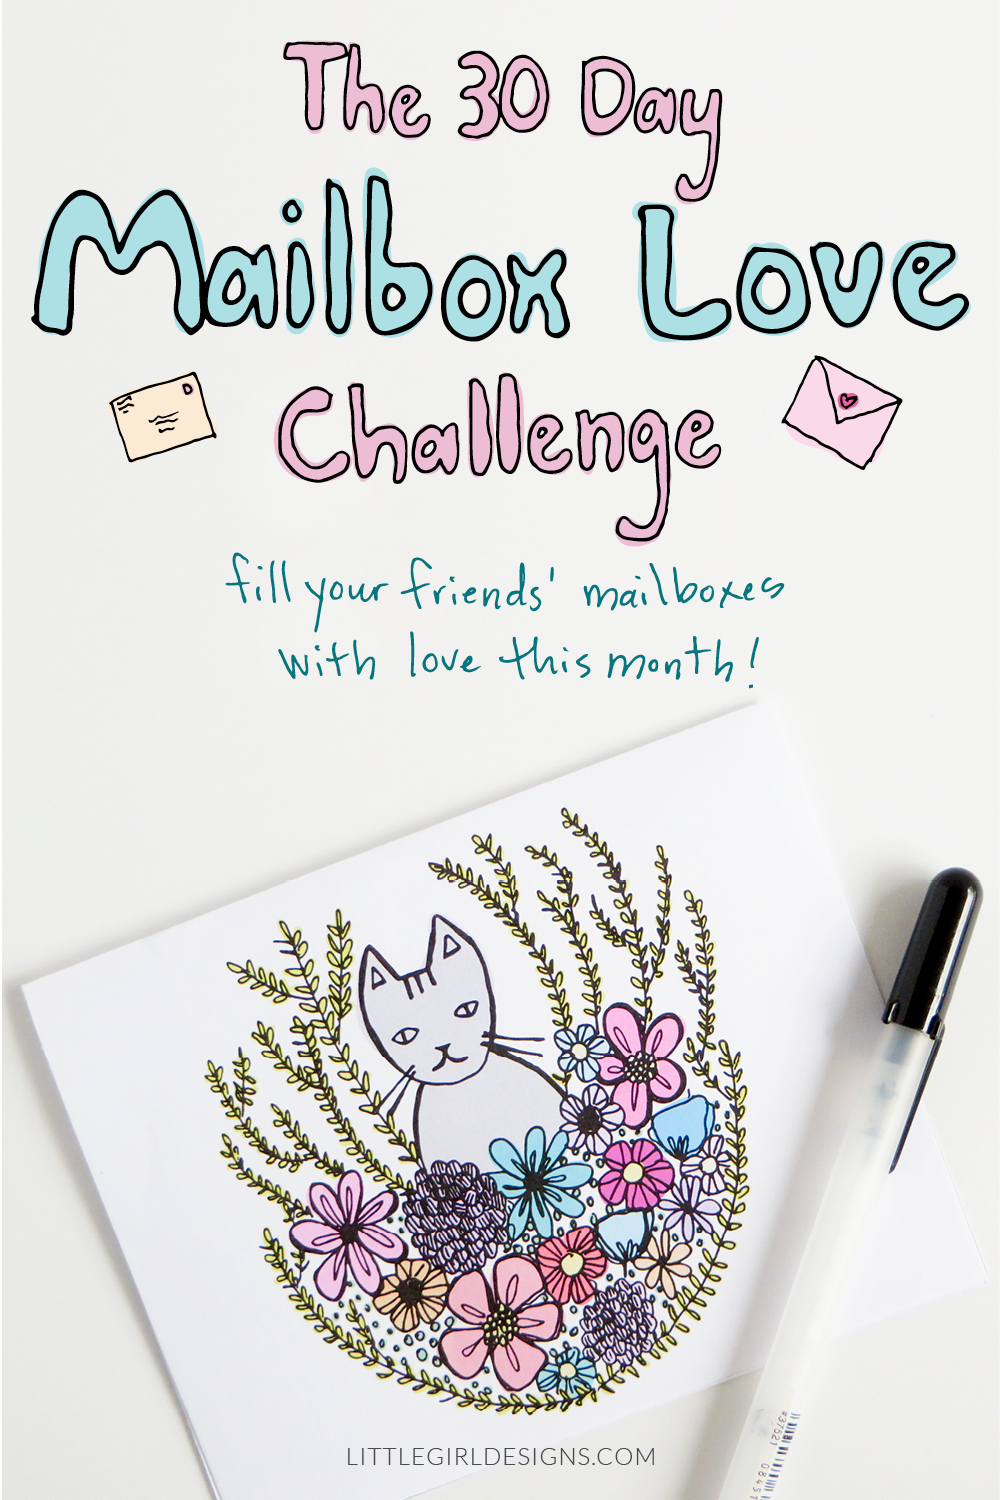 Sign up for the free 30 Day Mailbox Love Challenge and receive a cute printable calendar and stationery. You'll get to shower your friends and family with love in the form of cards and letters this month! Get more ideas for creative snail mail at Little Girl Designs.